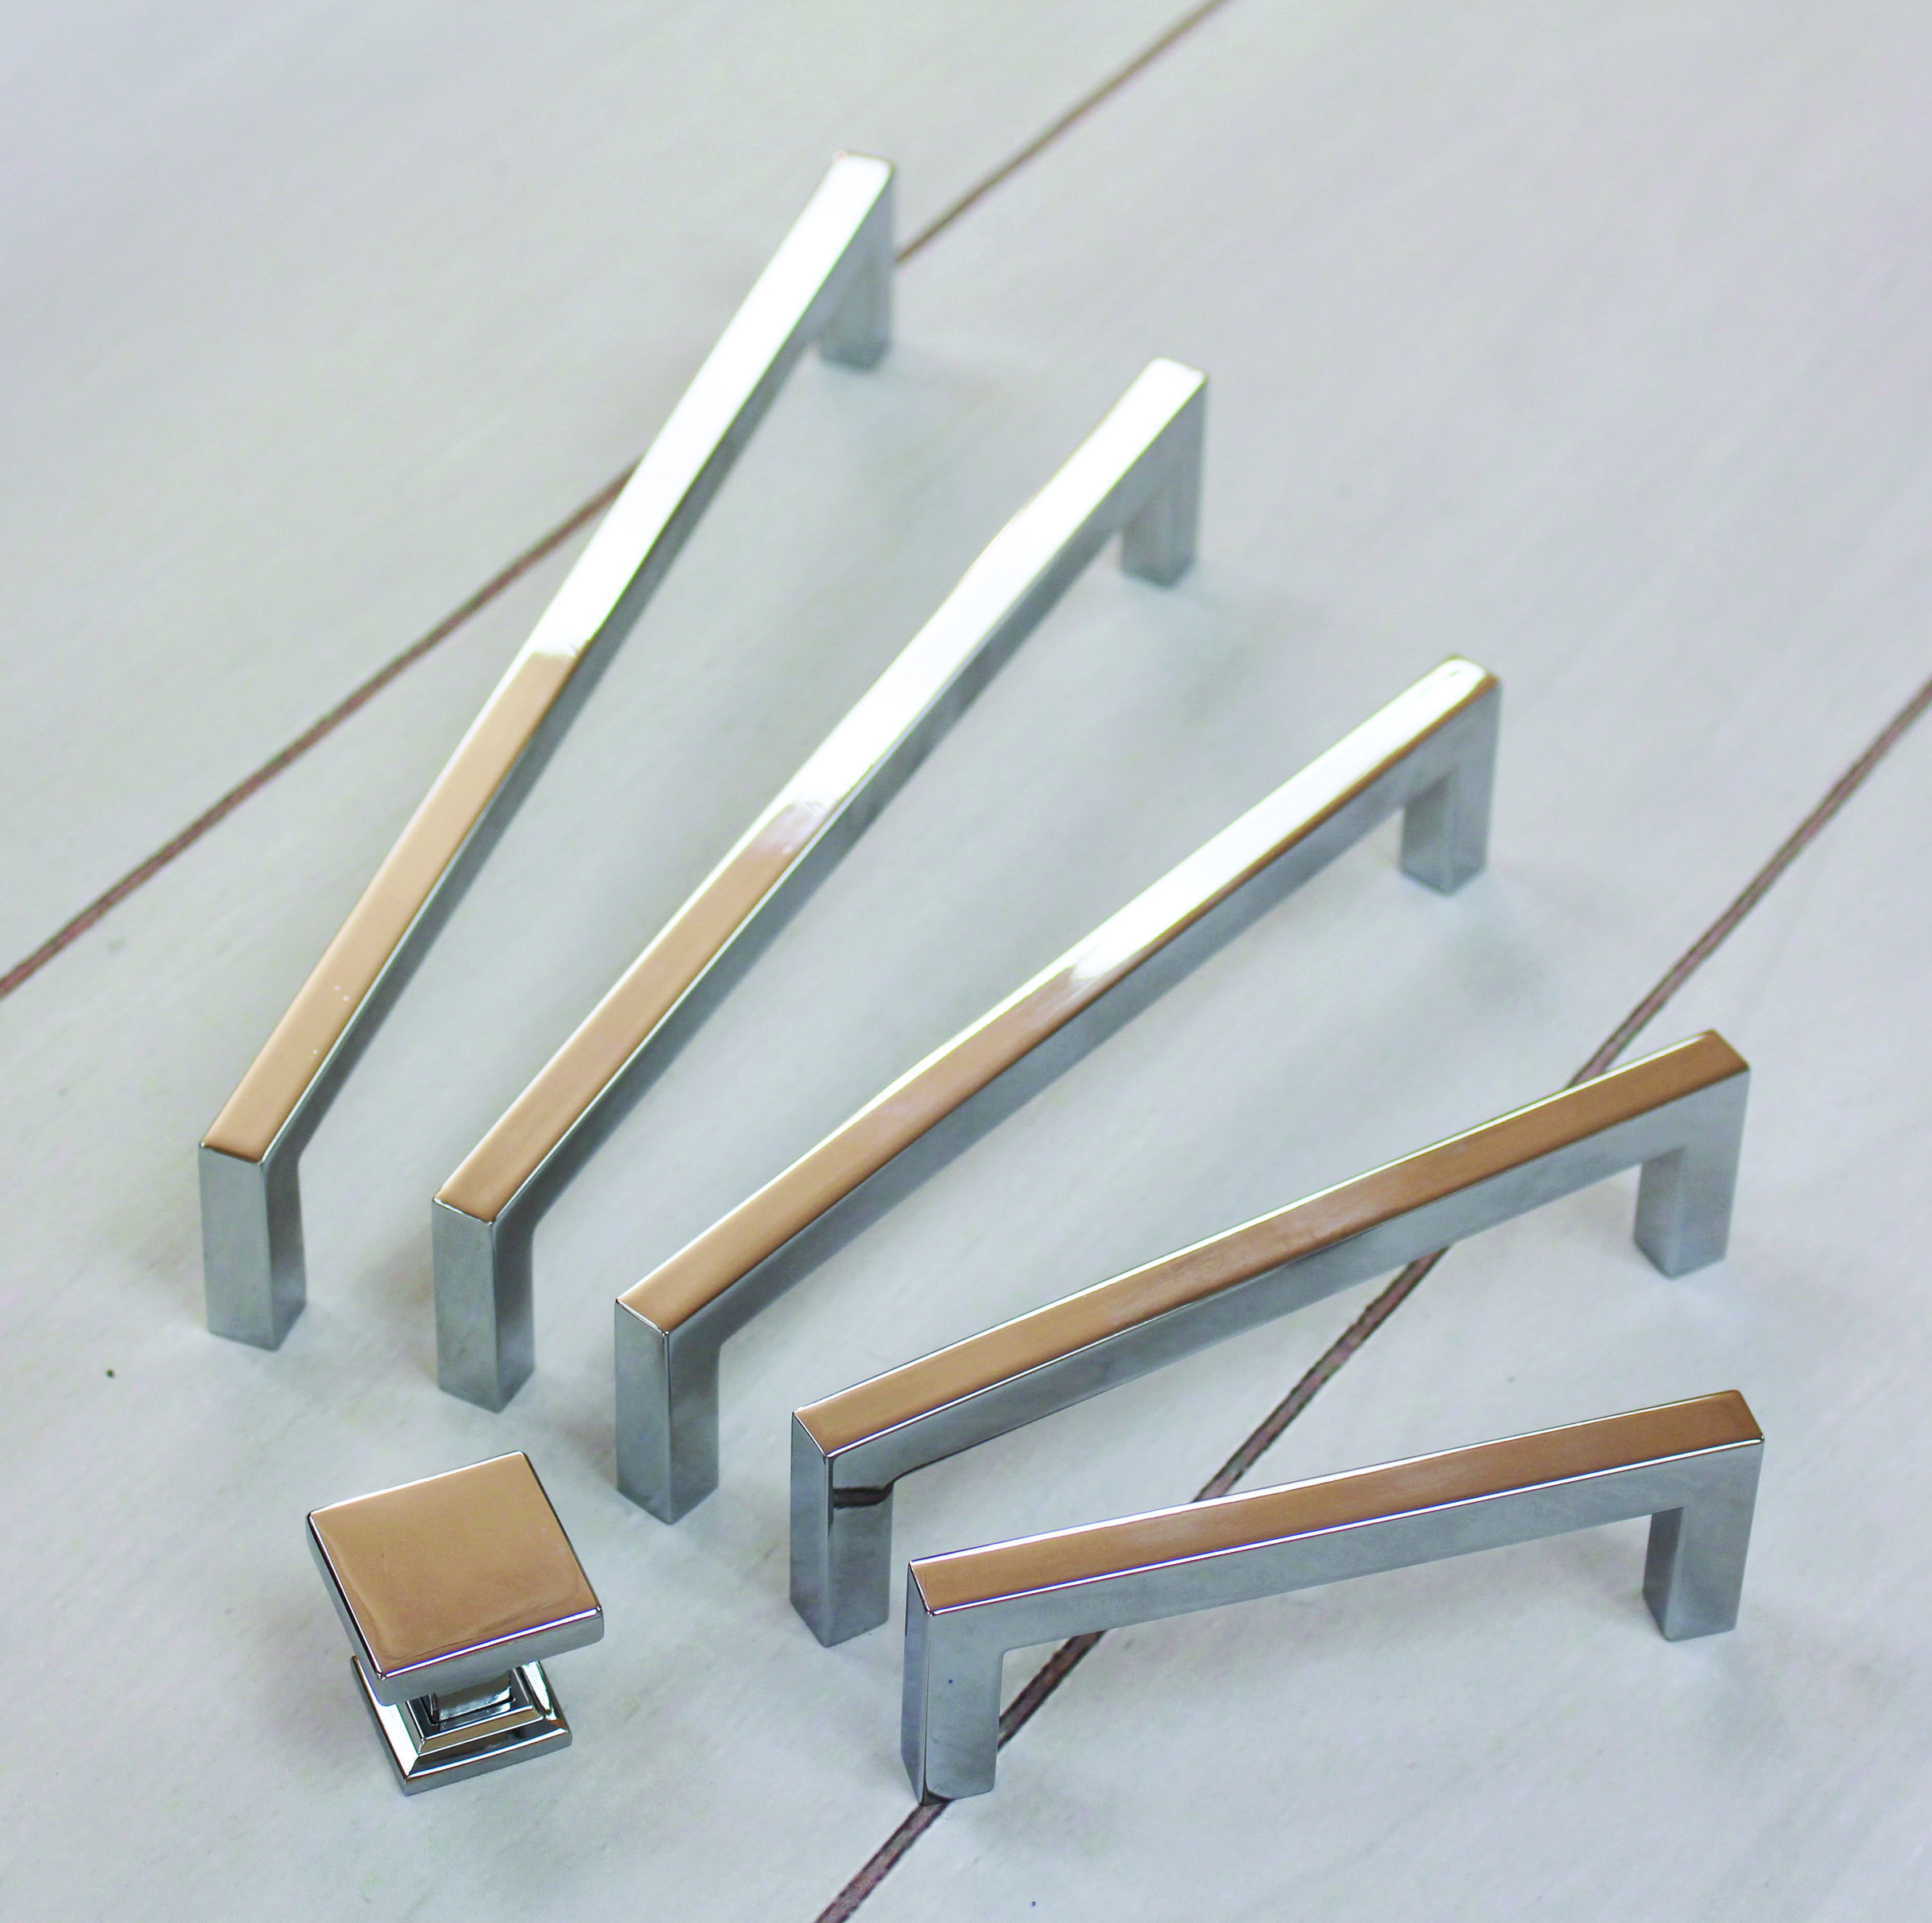 Contemporary Square Cabinet Pull | Cabinet hardware | Pinterest ...